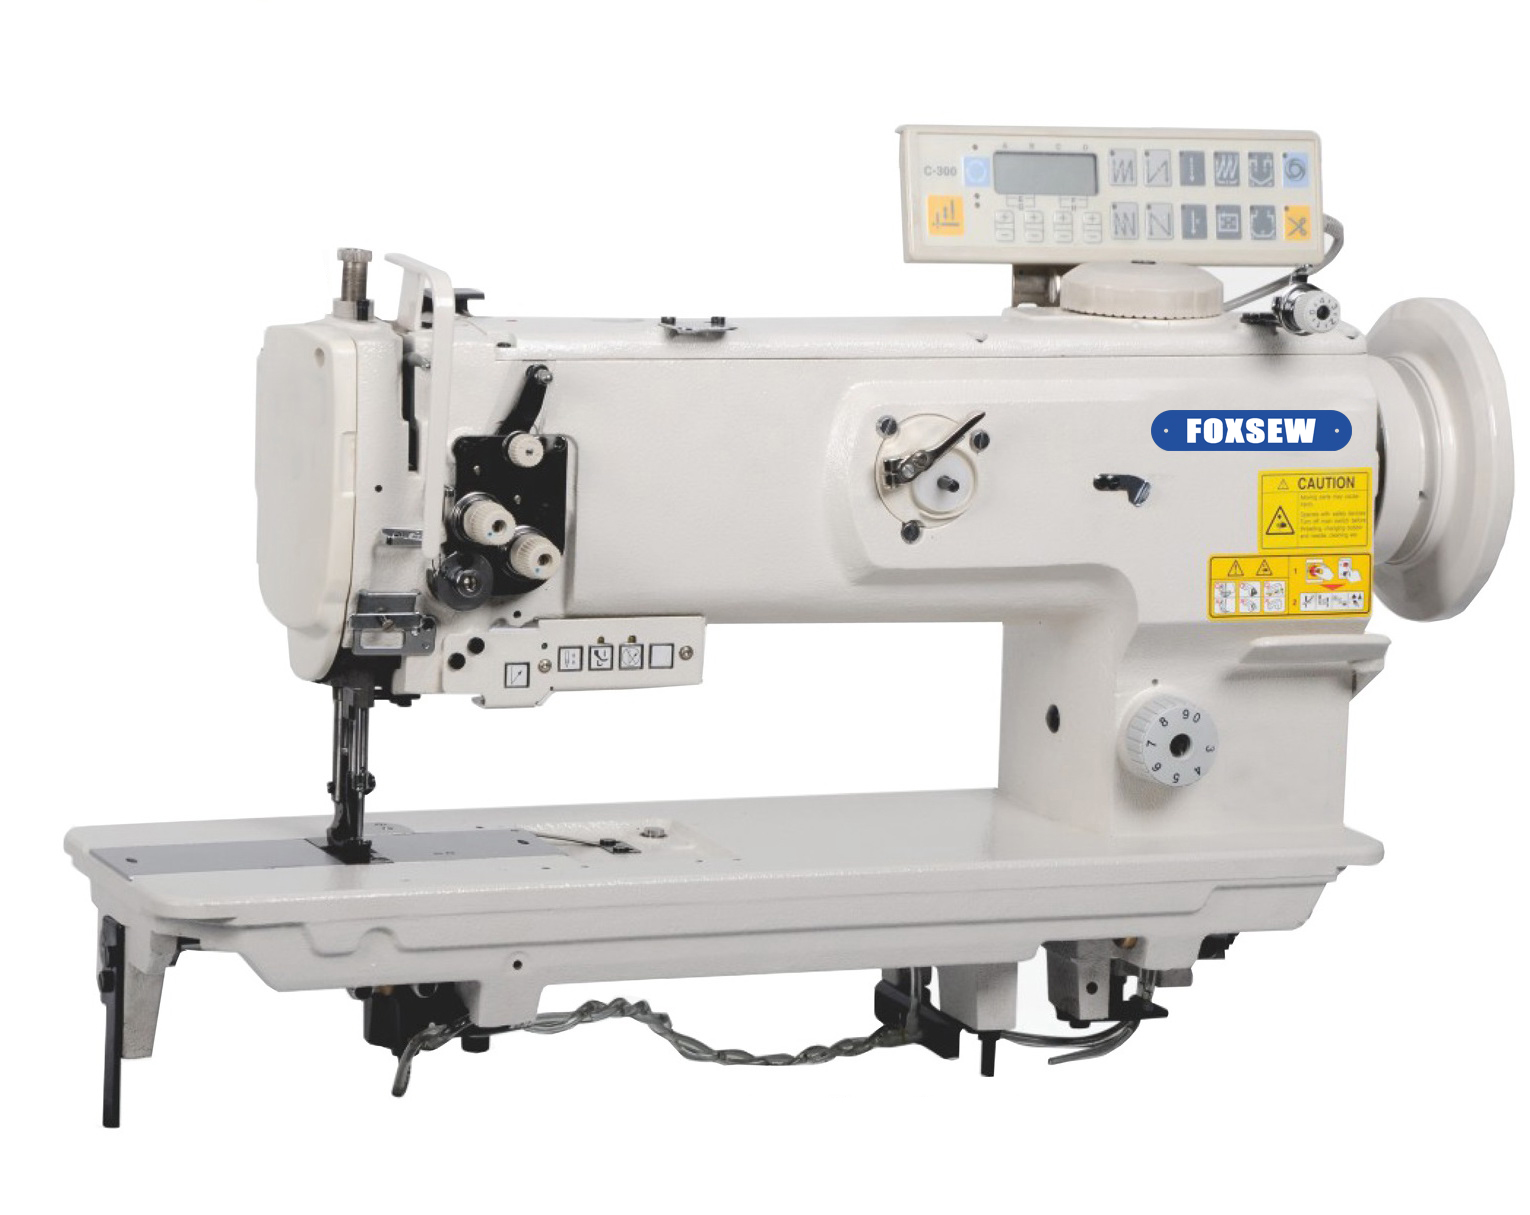 KD-1510N-L14-7 Single Needle Heavy Duty Sewing Machine with Auto Trimme